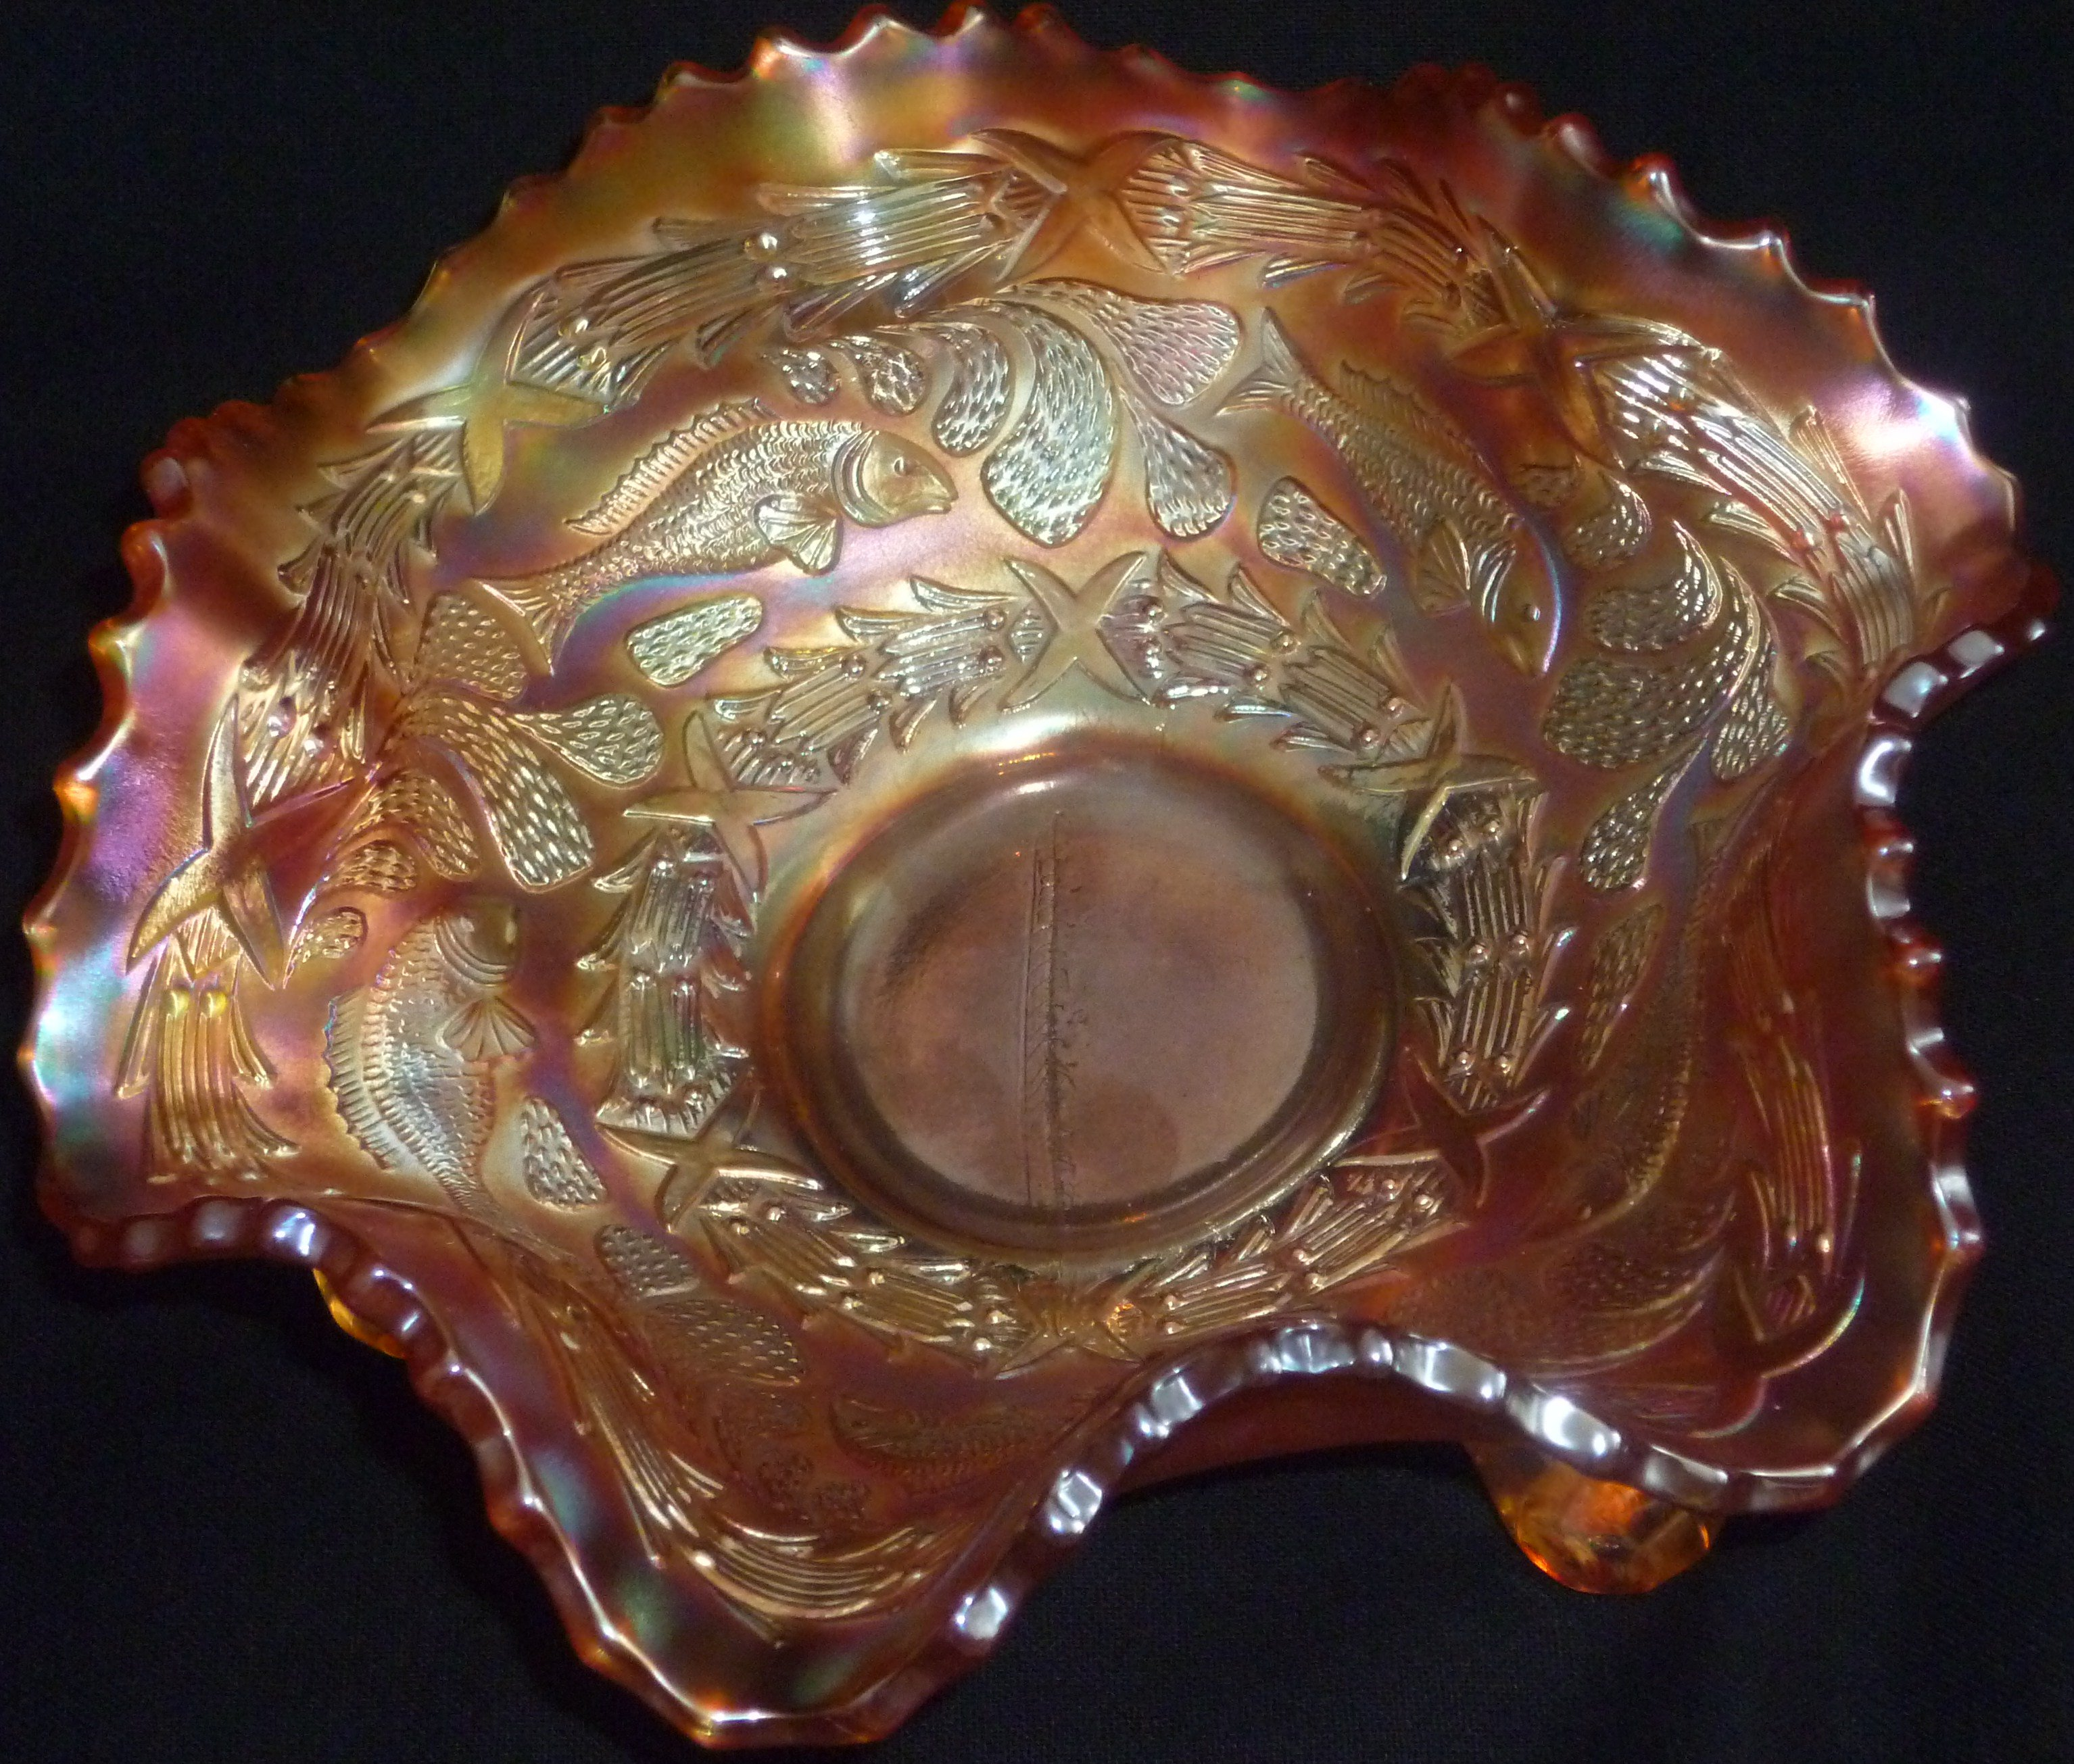 FOR SALE: Marigold LITTLE FISHES Small Ruffled Bowl Fenton c.1915